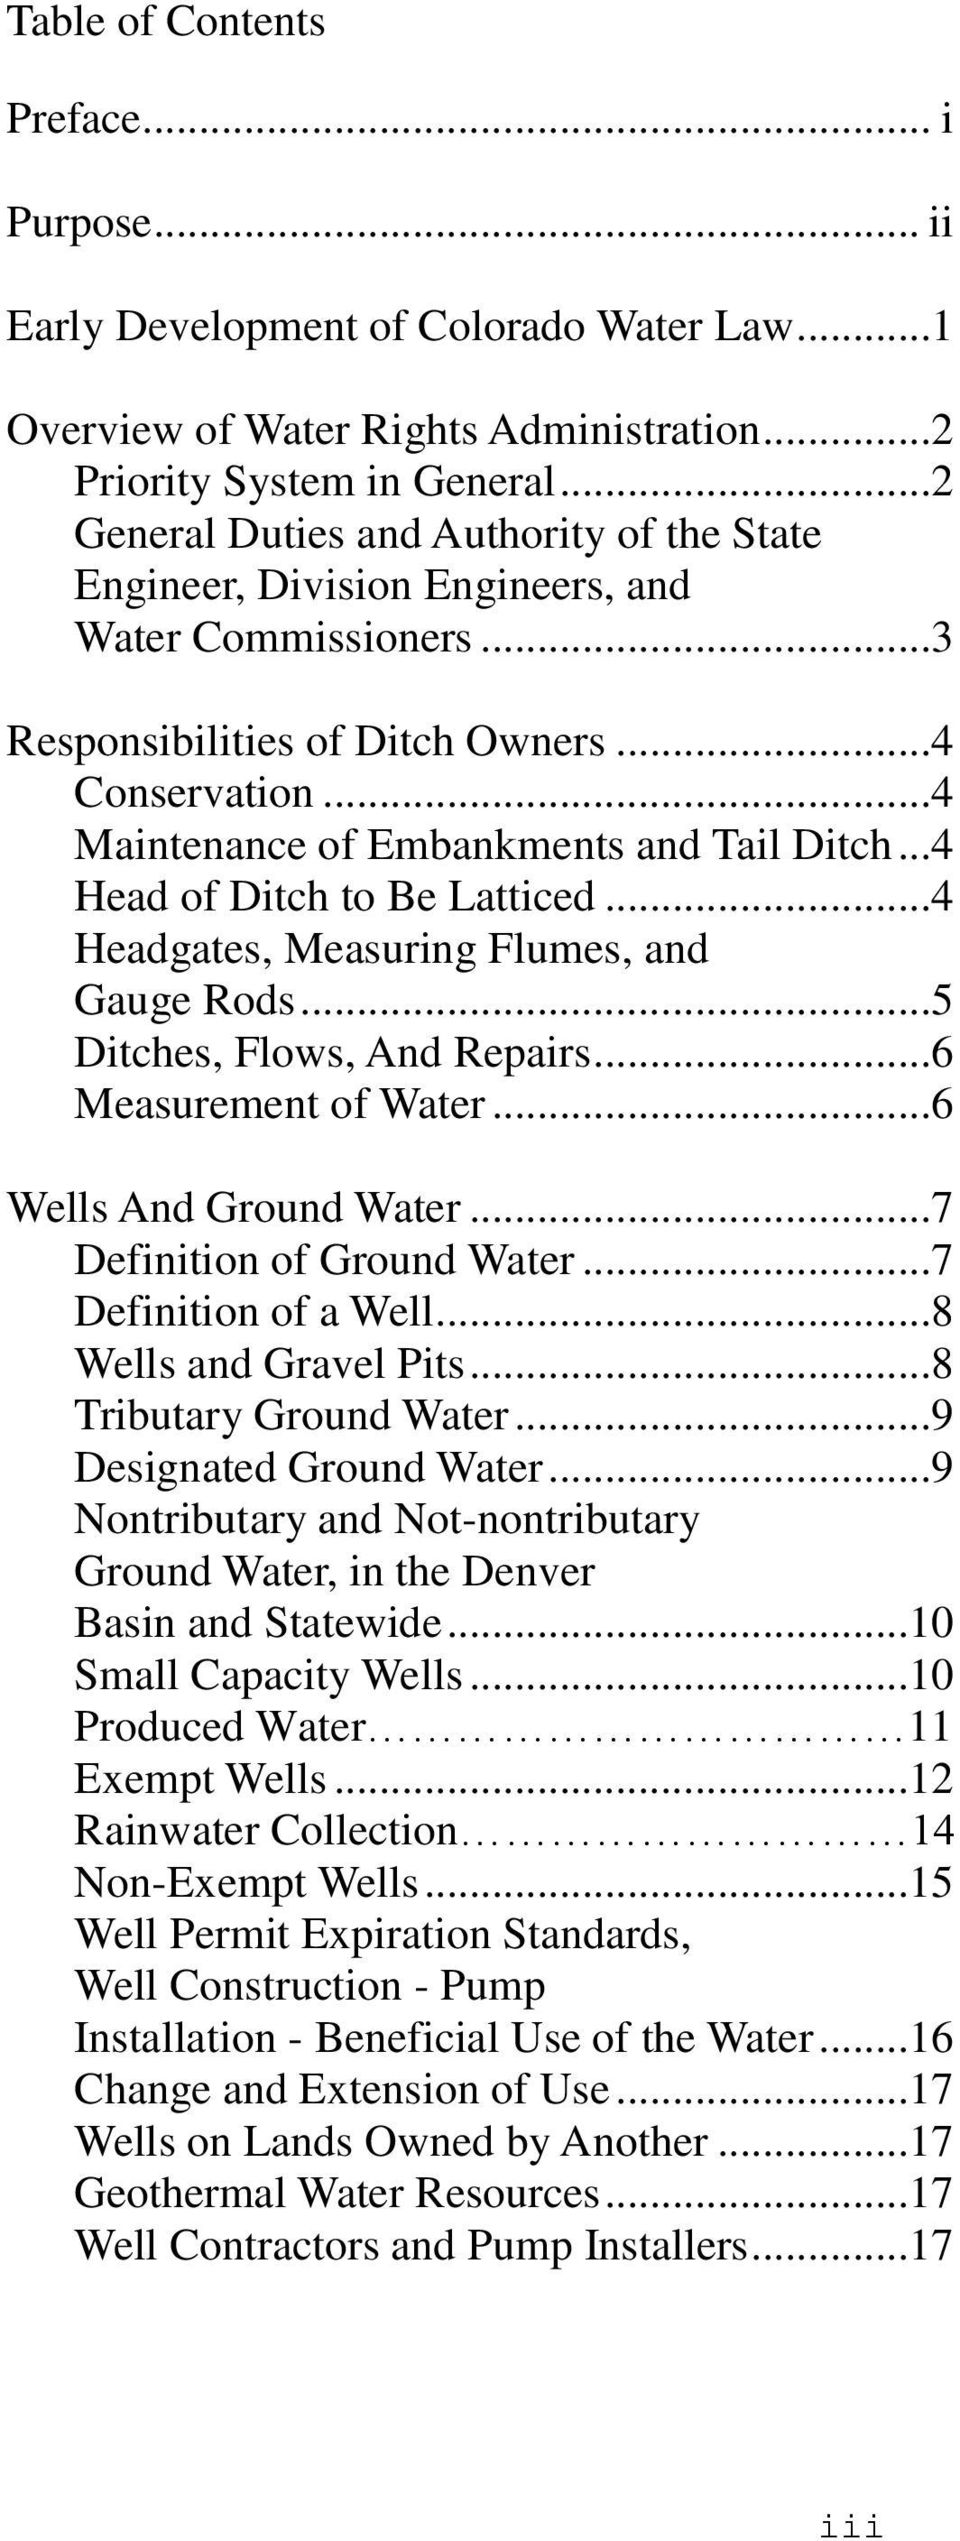 ..4 Head of Ditch to Be Latticed...4 Headgates, Measuring Flumes, and Gauge Rods...5 Ditches, Flows, And Repairs...6 Measurement of Water...6 Wells And Ground Water...7 Definition of Ground Water.